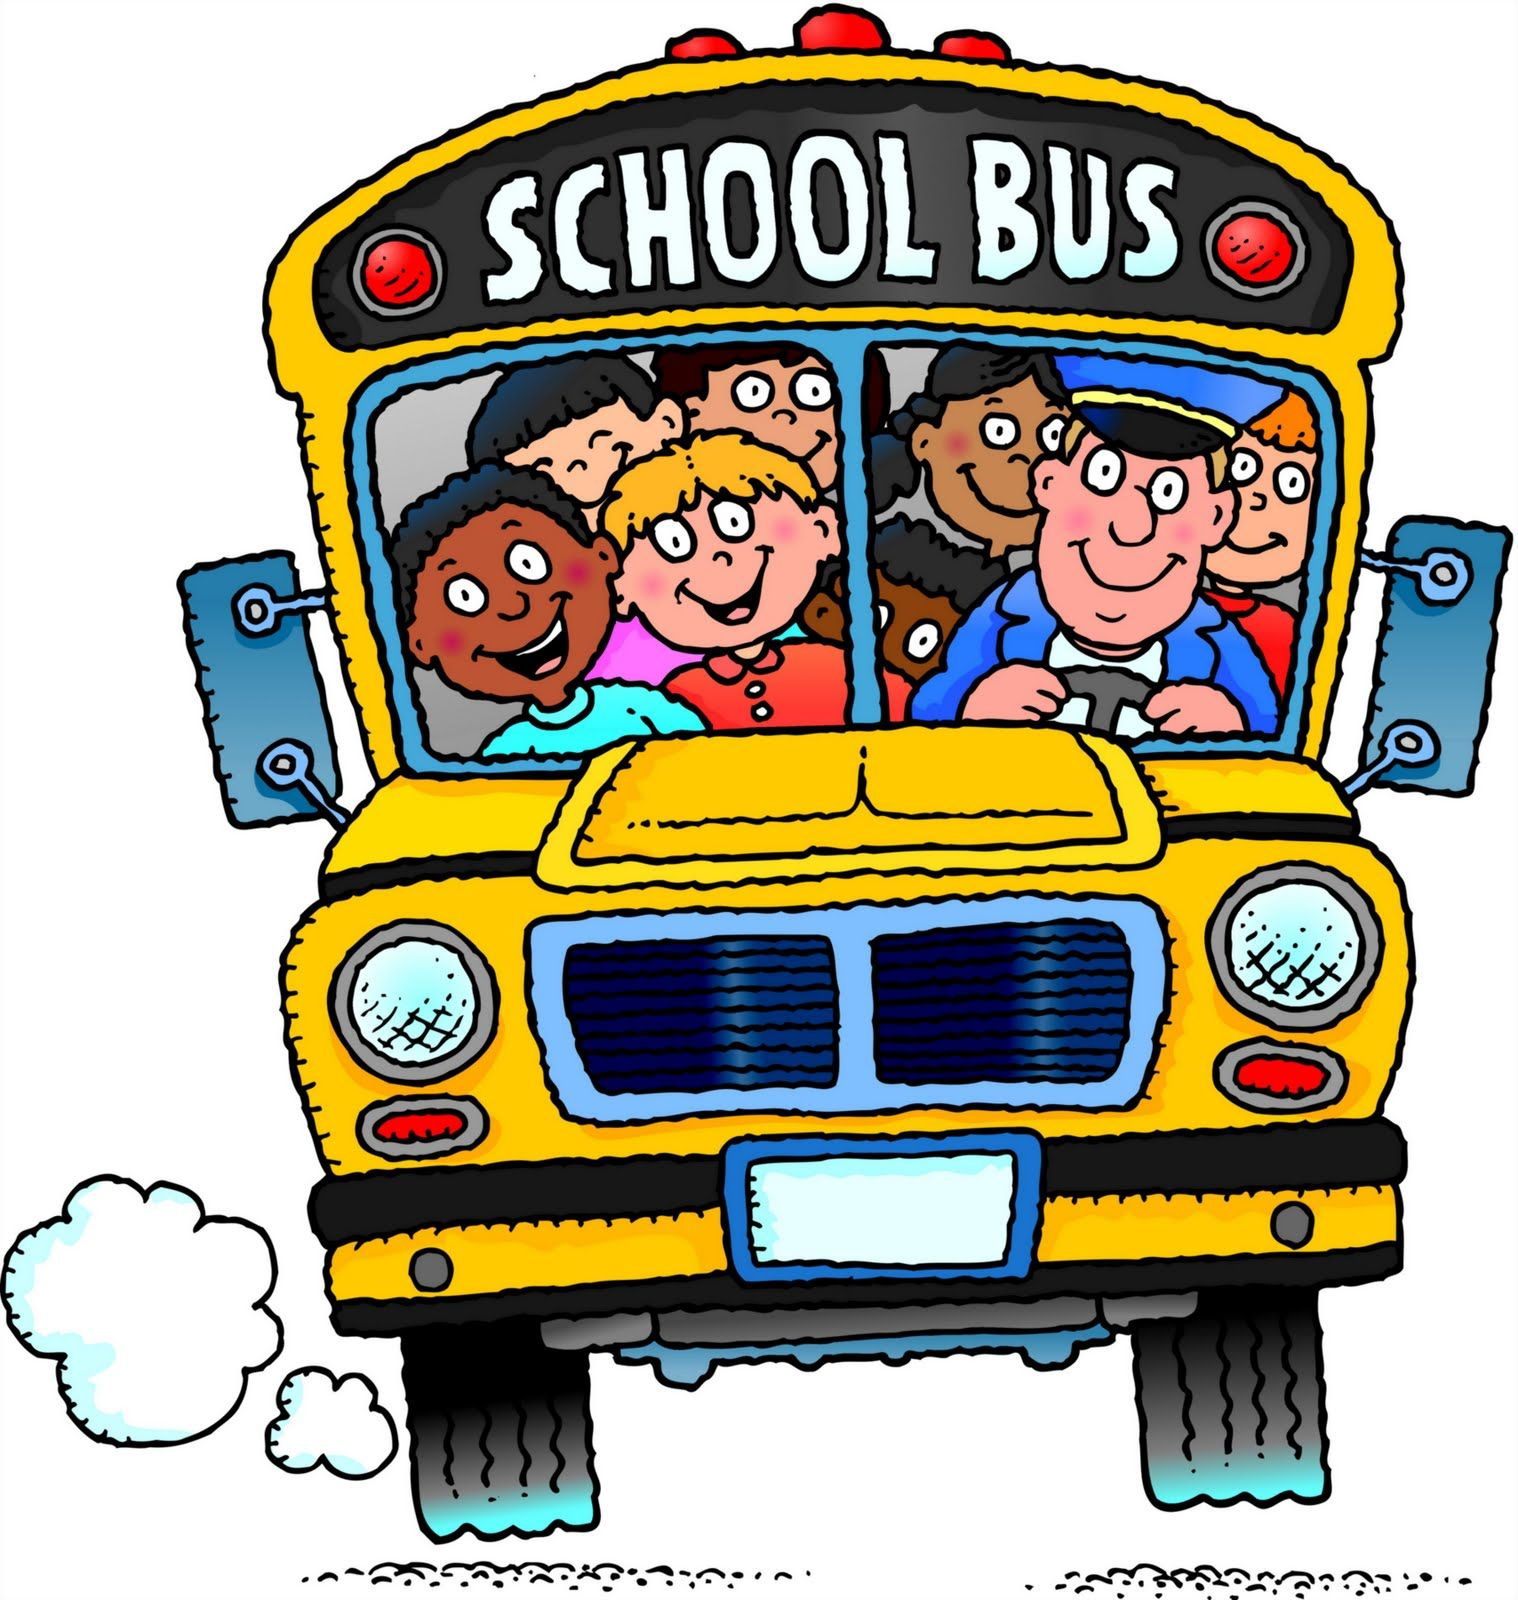 Free School Bus Clipart 7 5 Site Has Many School Bus Images With